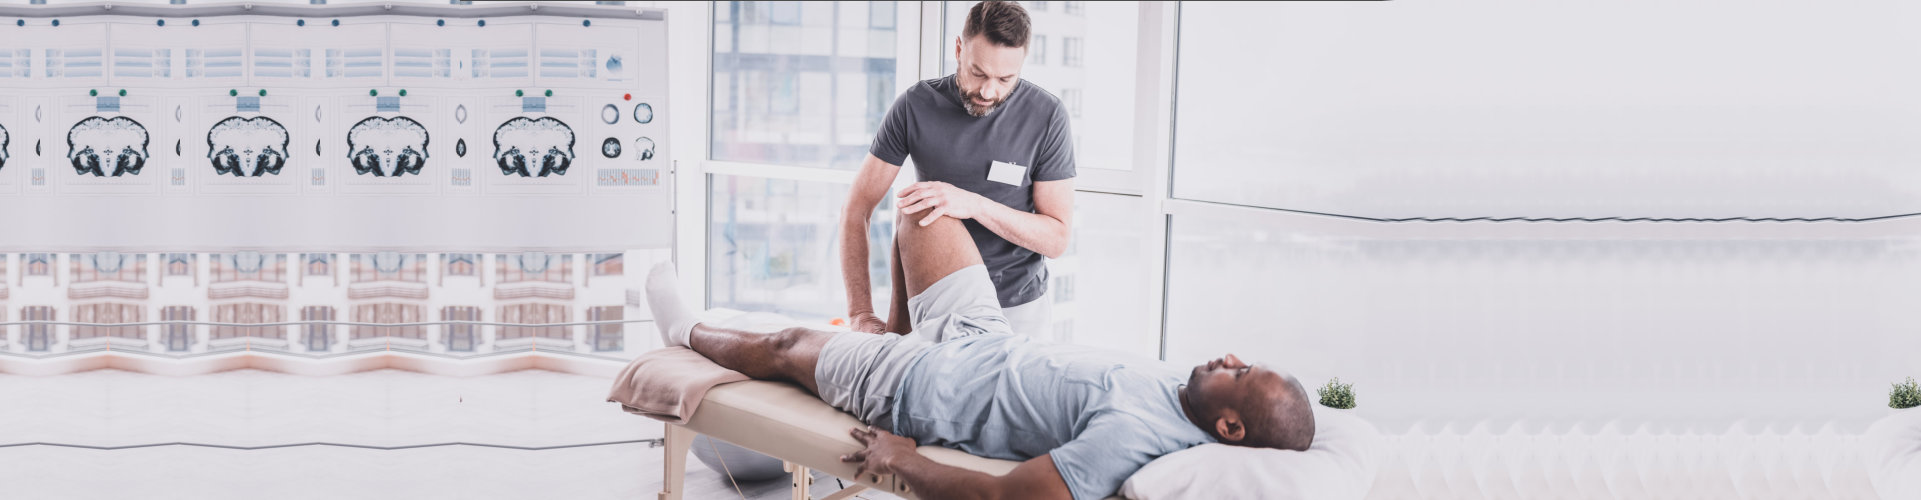 Try to relax. Pleased brunette therapist bowing head while examining his injured patient